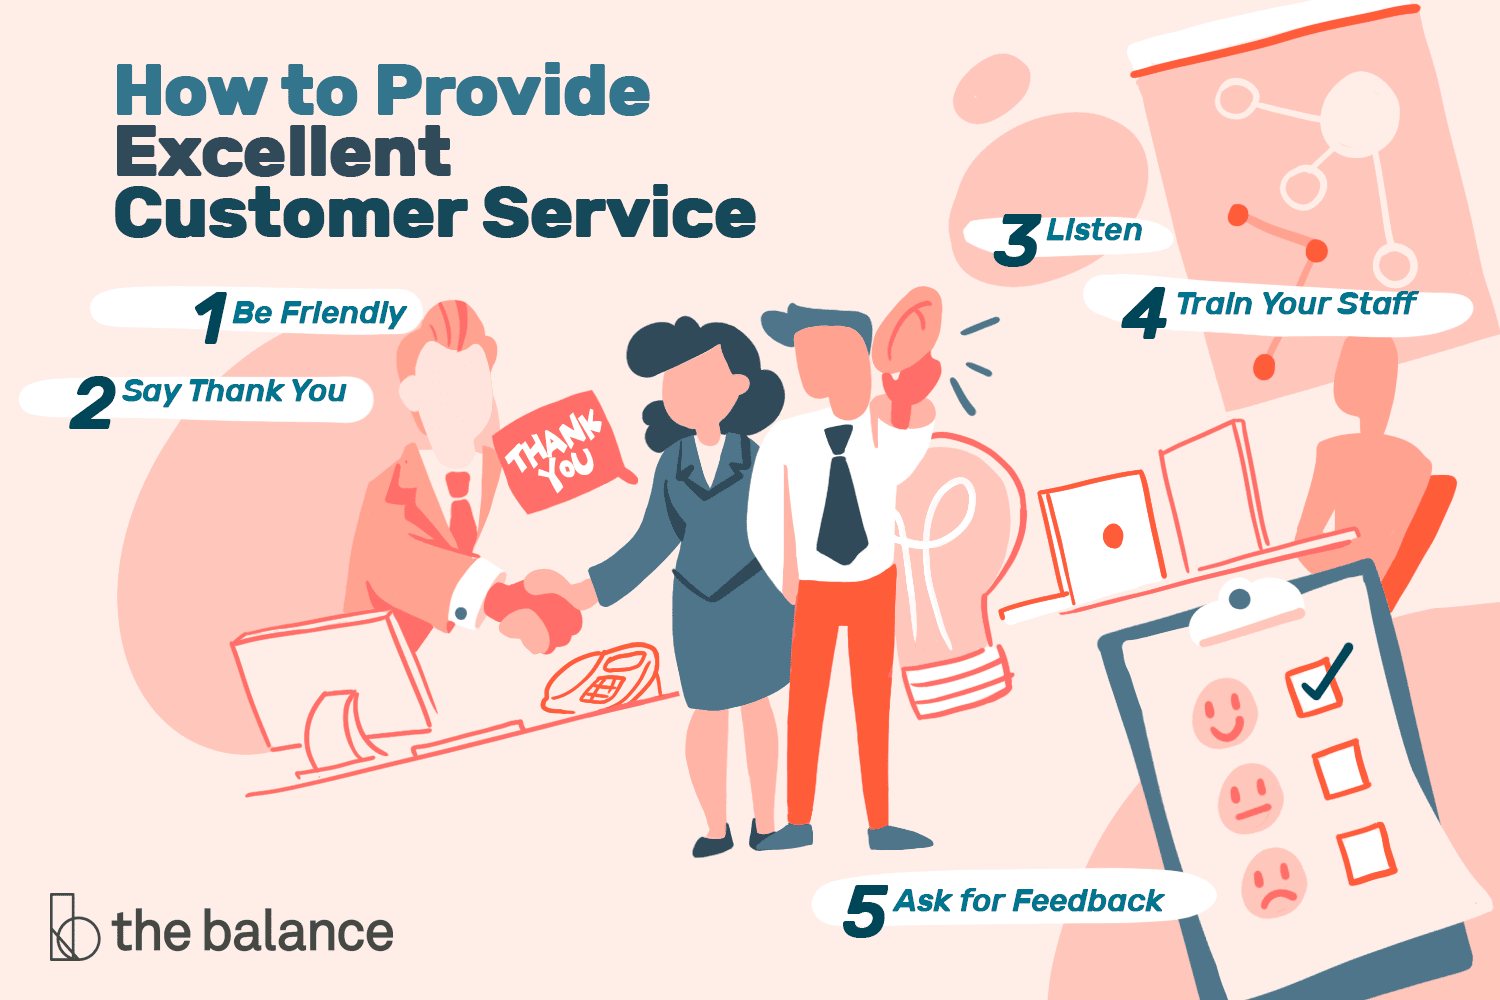 Tips For Providing Excellent Customer Service